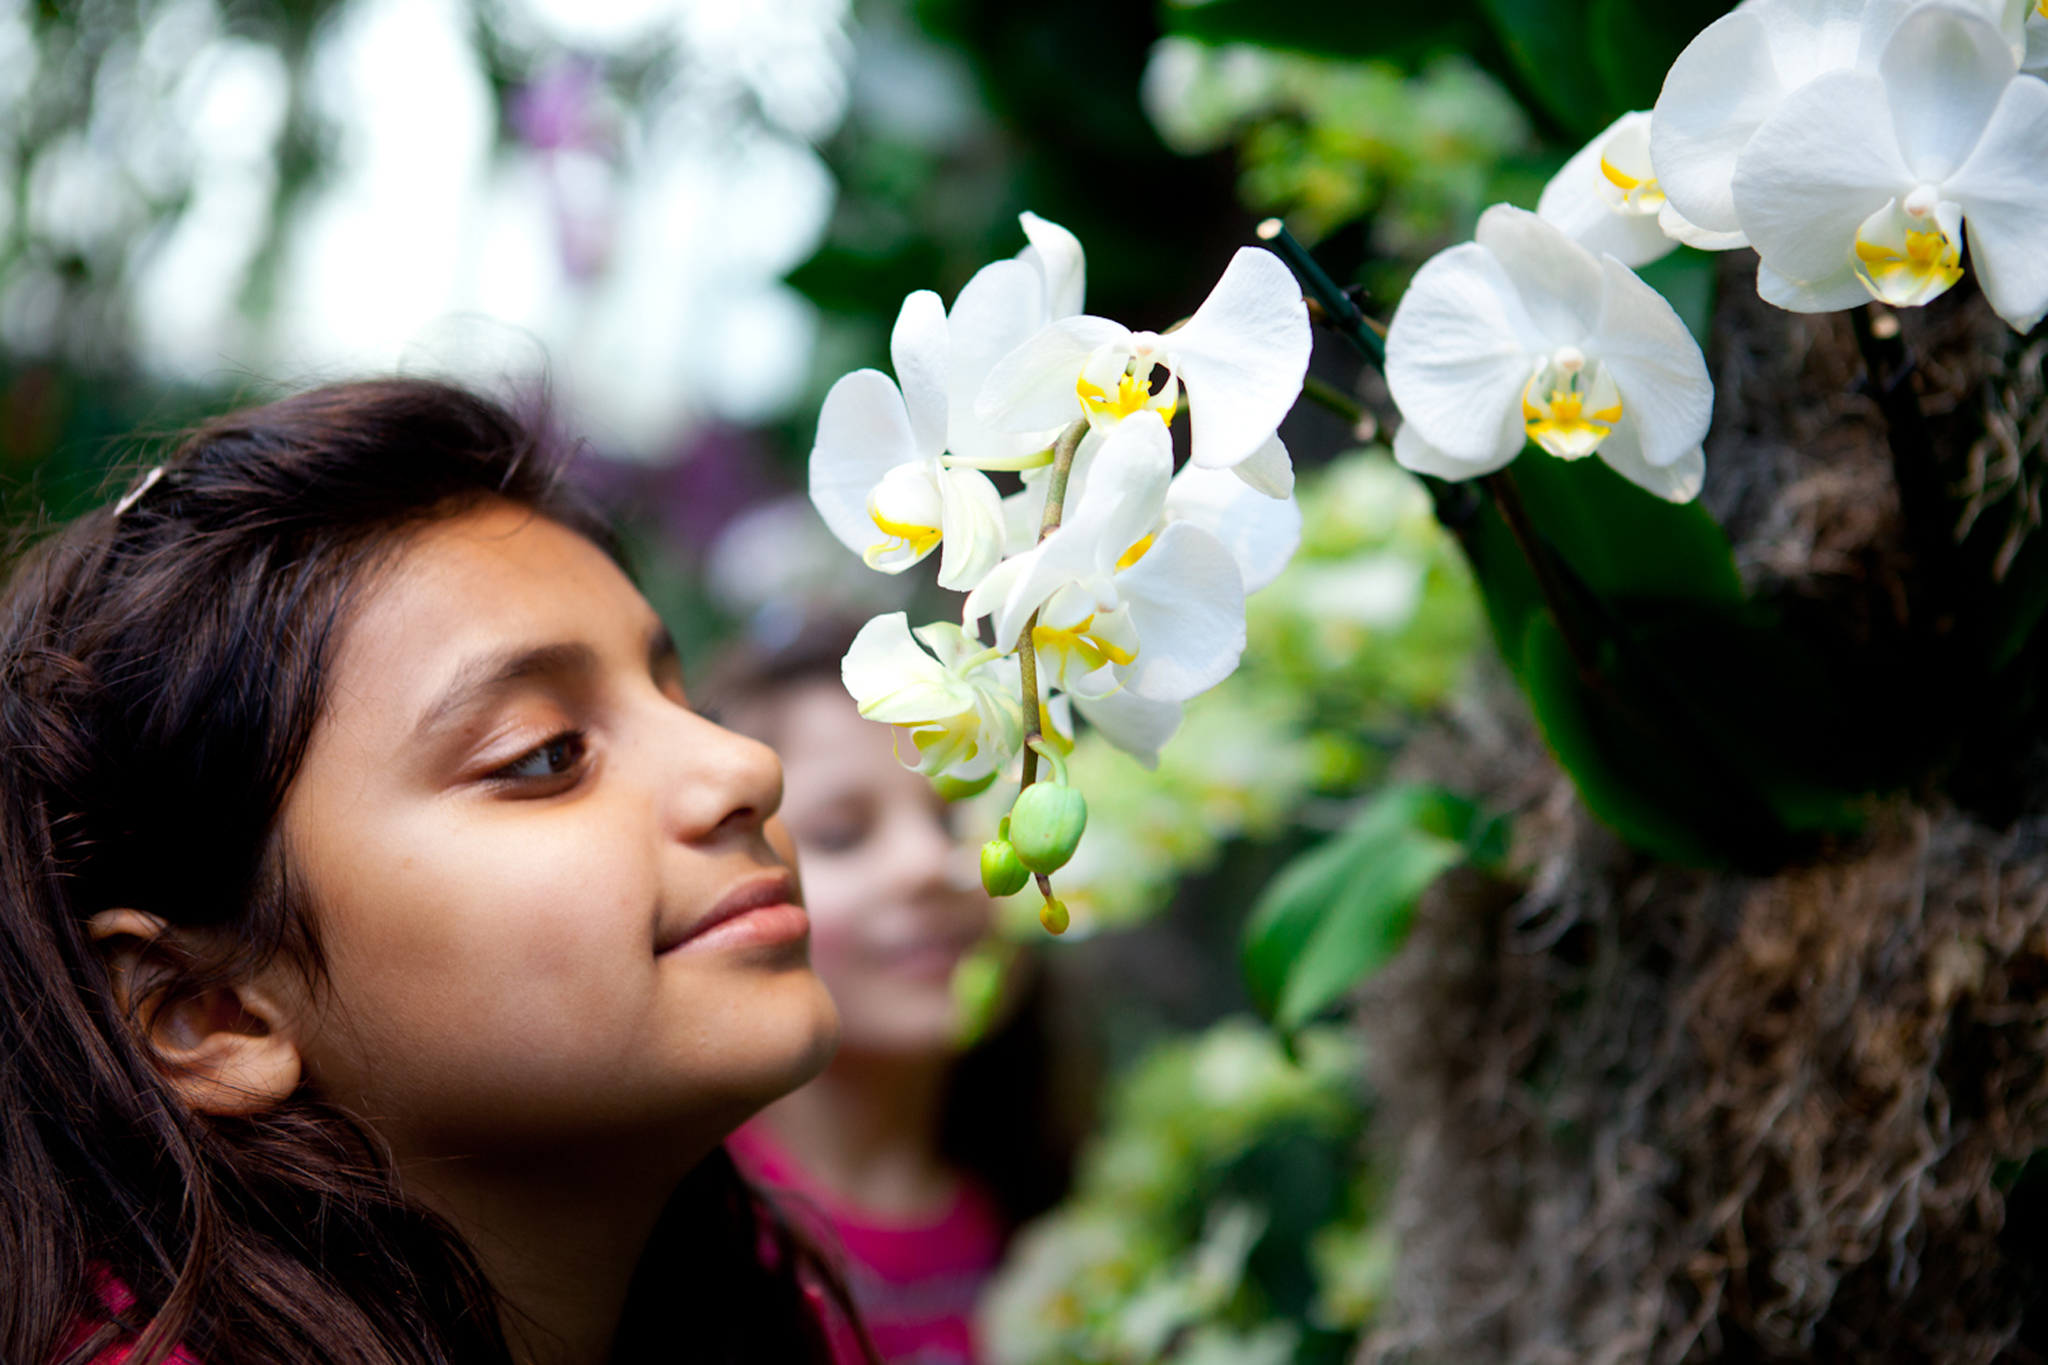 Stop and smell the flowers at NYBG's Orchid Show